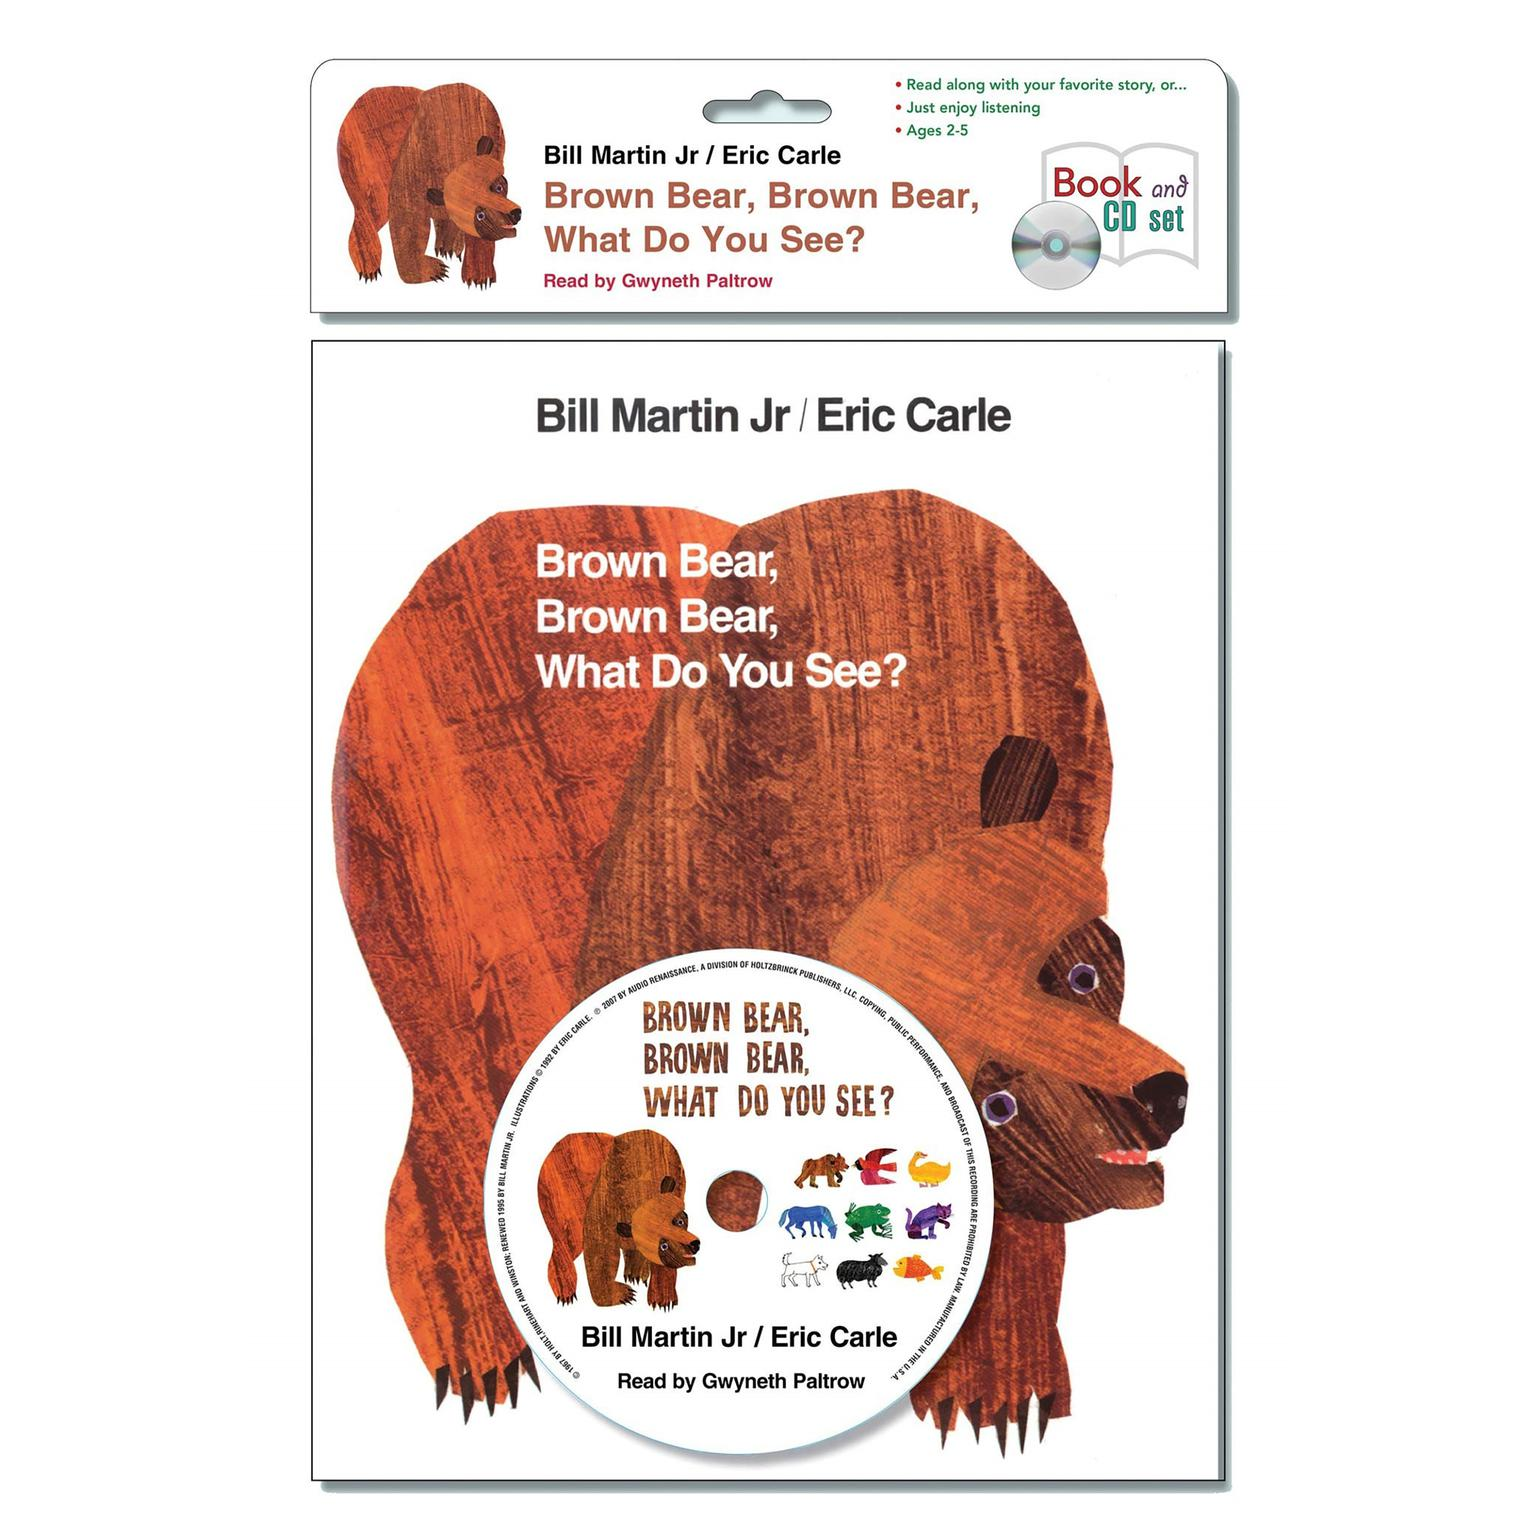 Brown bear brown bear what do you see book cover